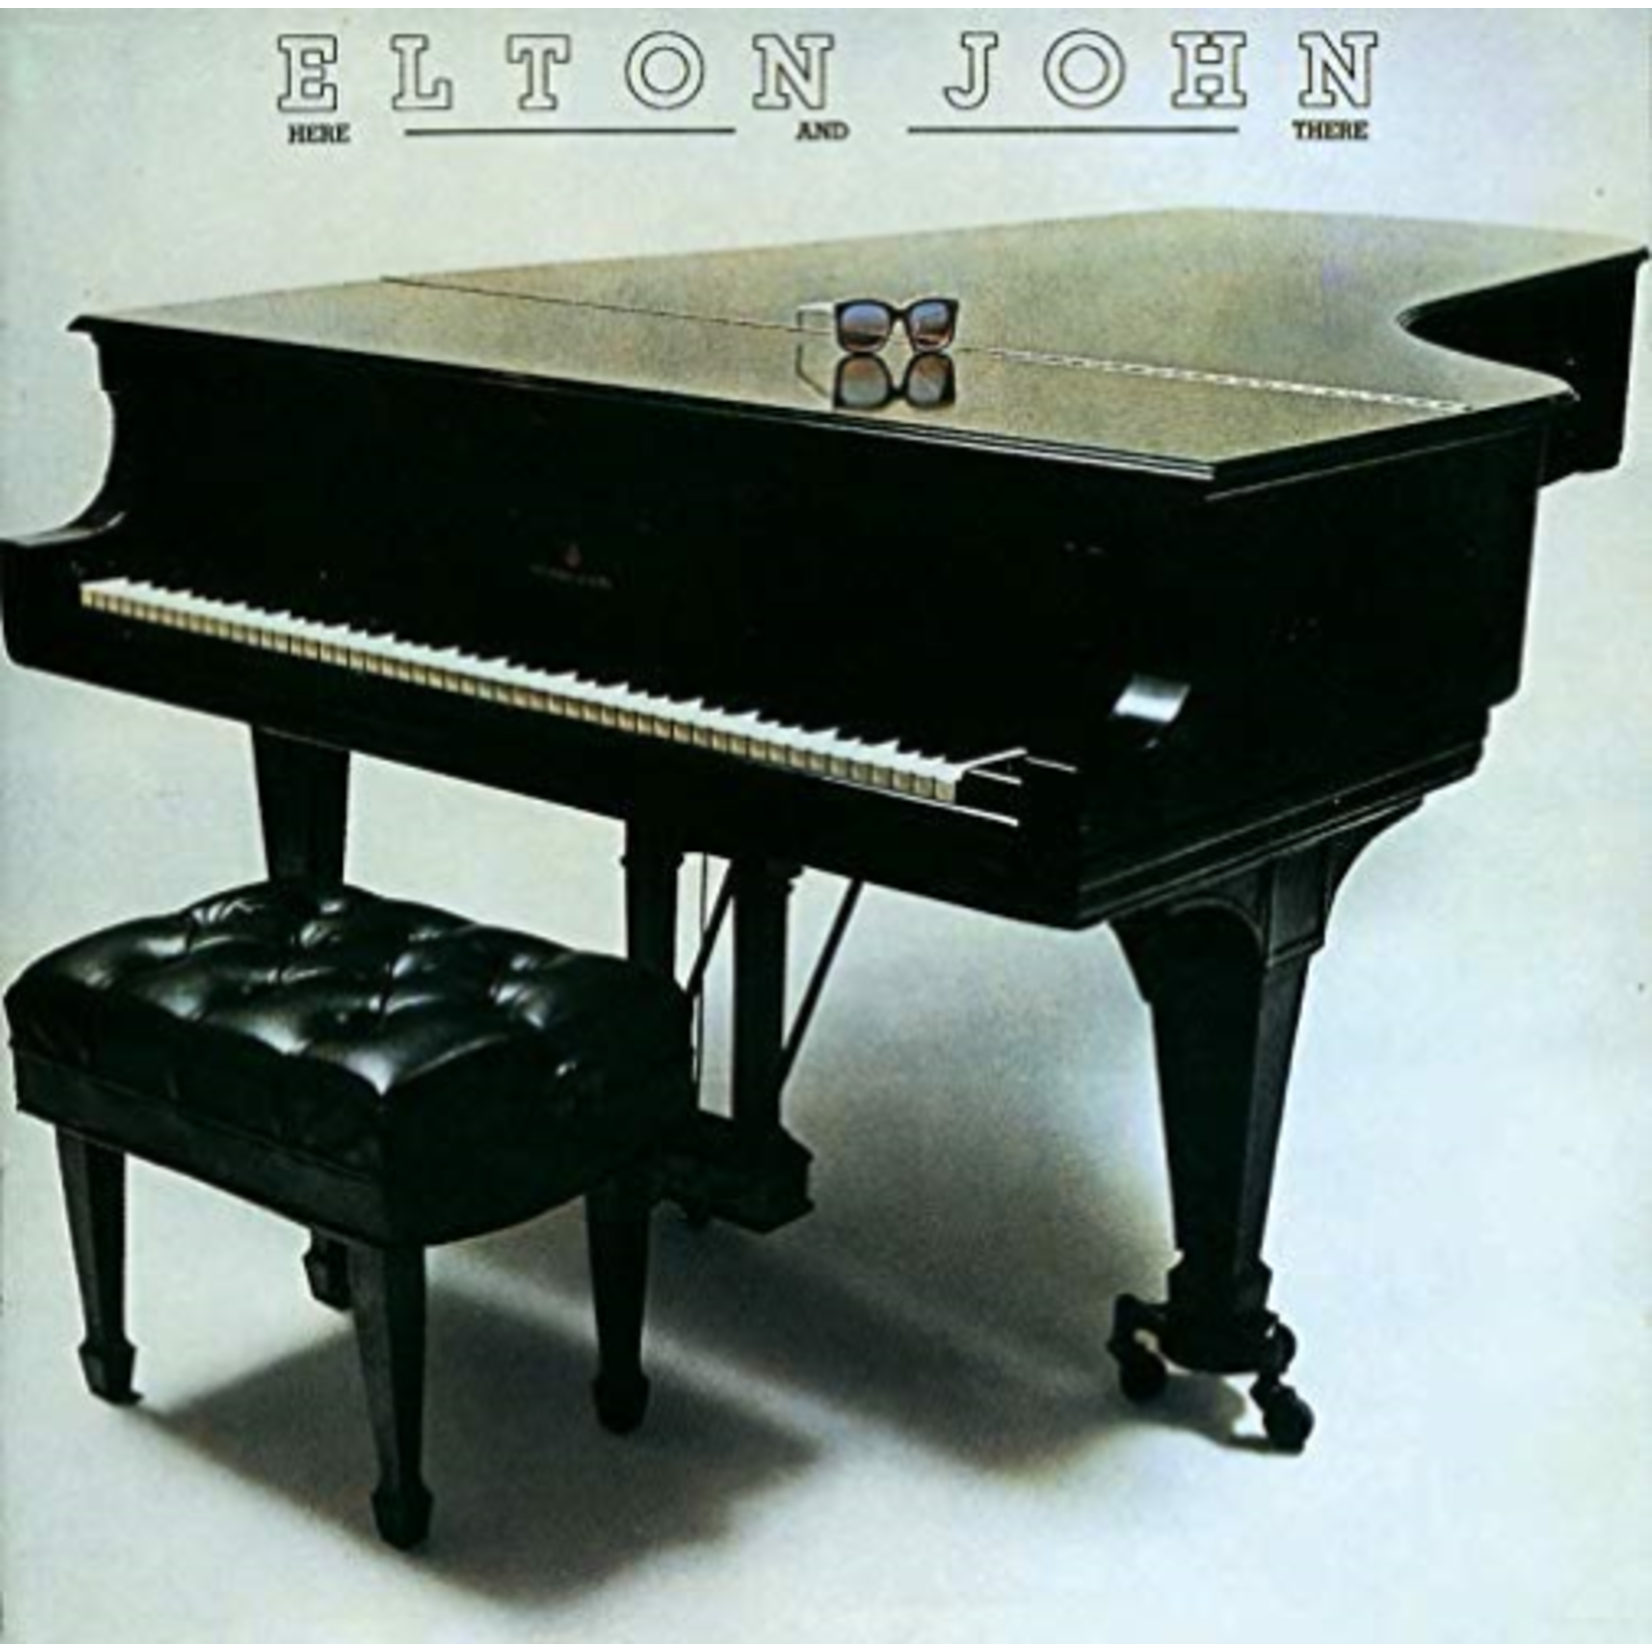 ELTON JOHN HERE AND THERE (LP)